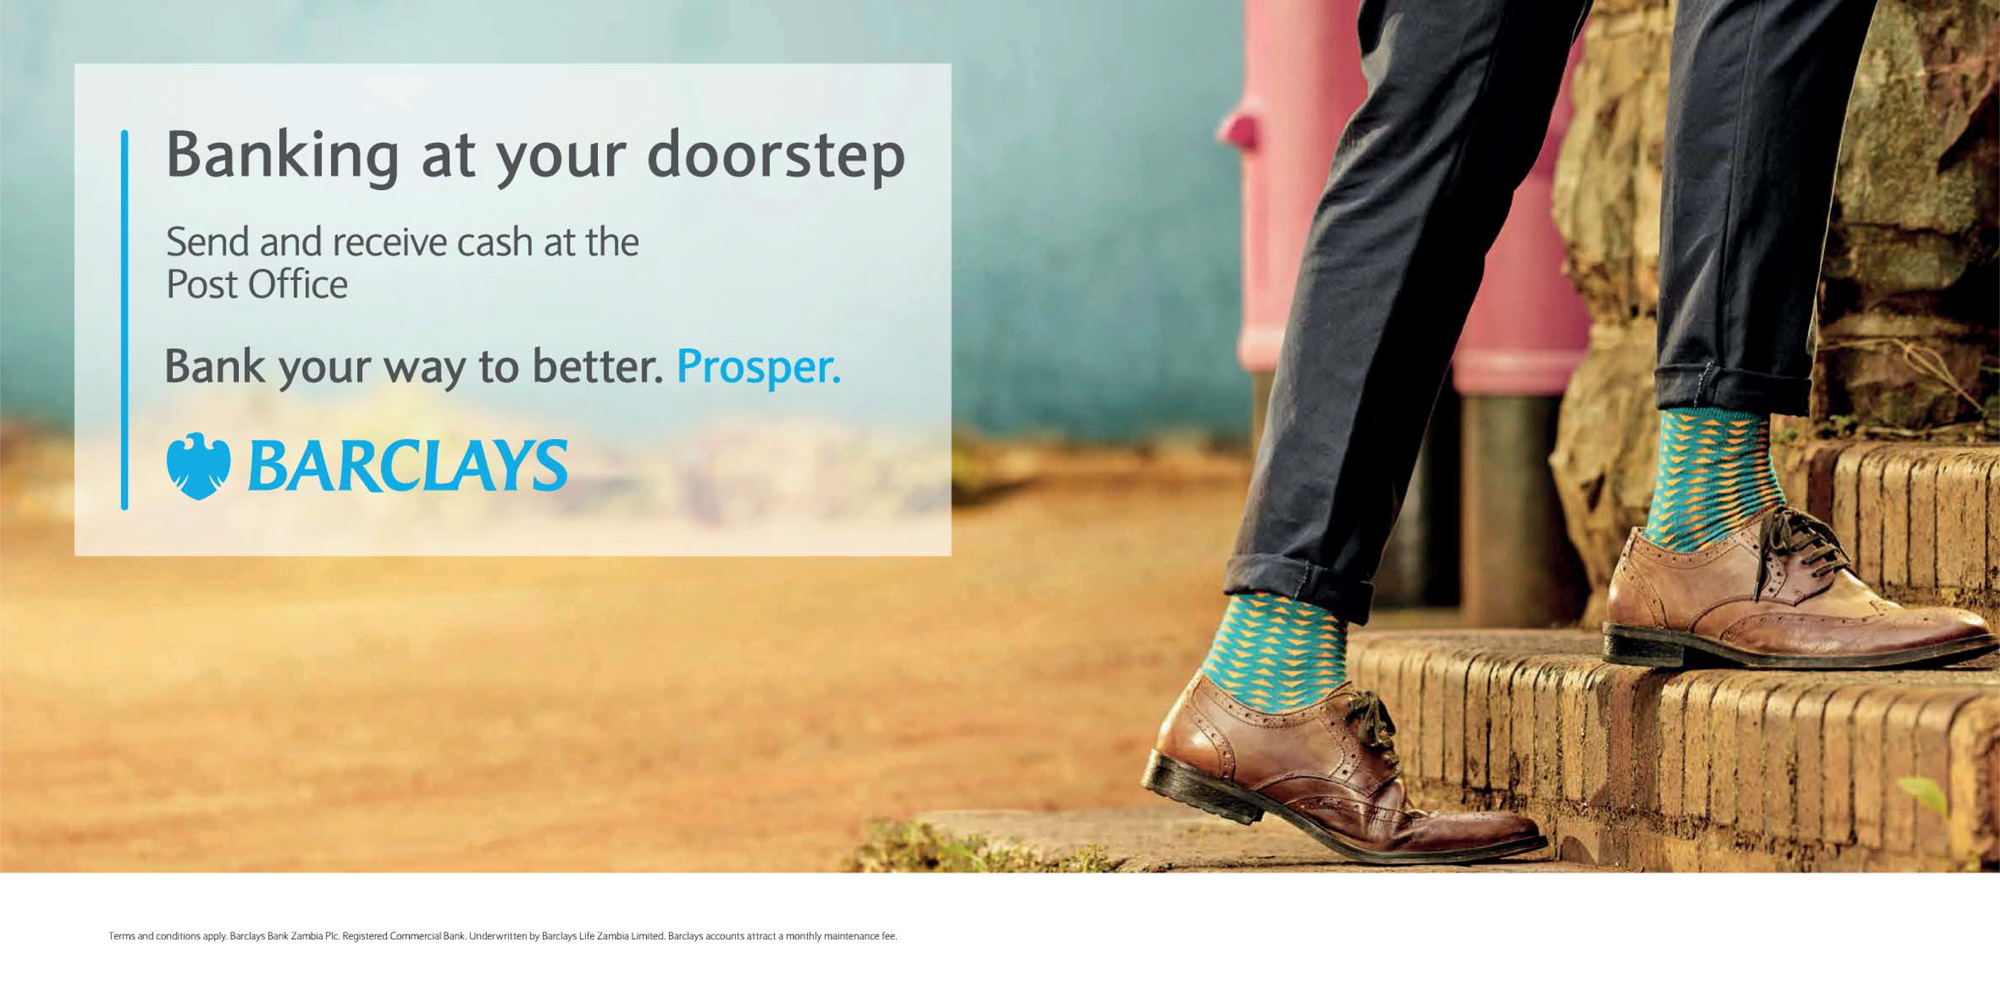 Barclays Personal Banking Campaign Toolkit 26 APRIL-63.jpg